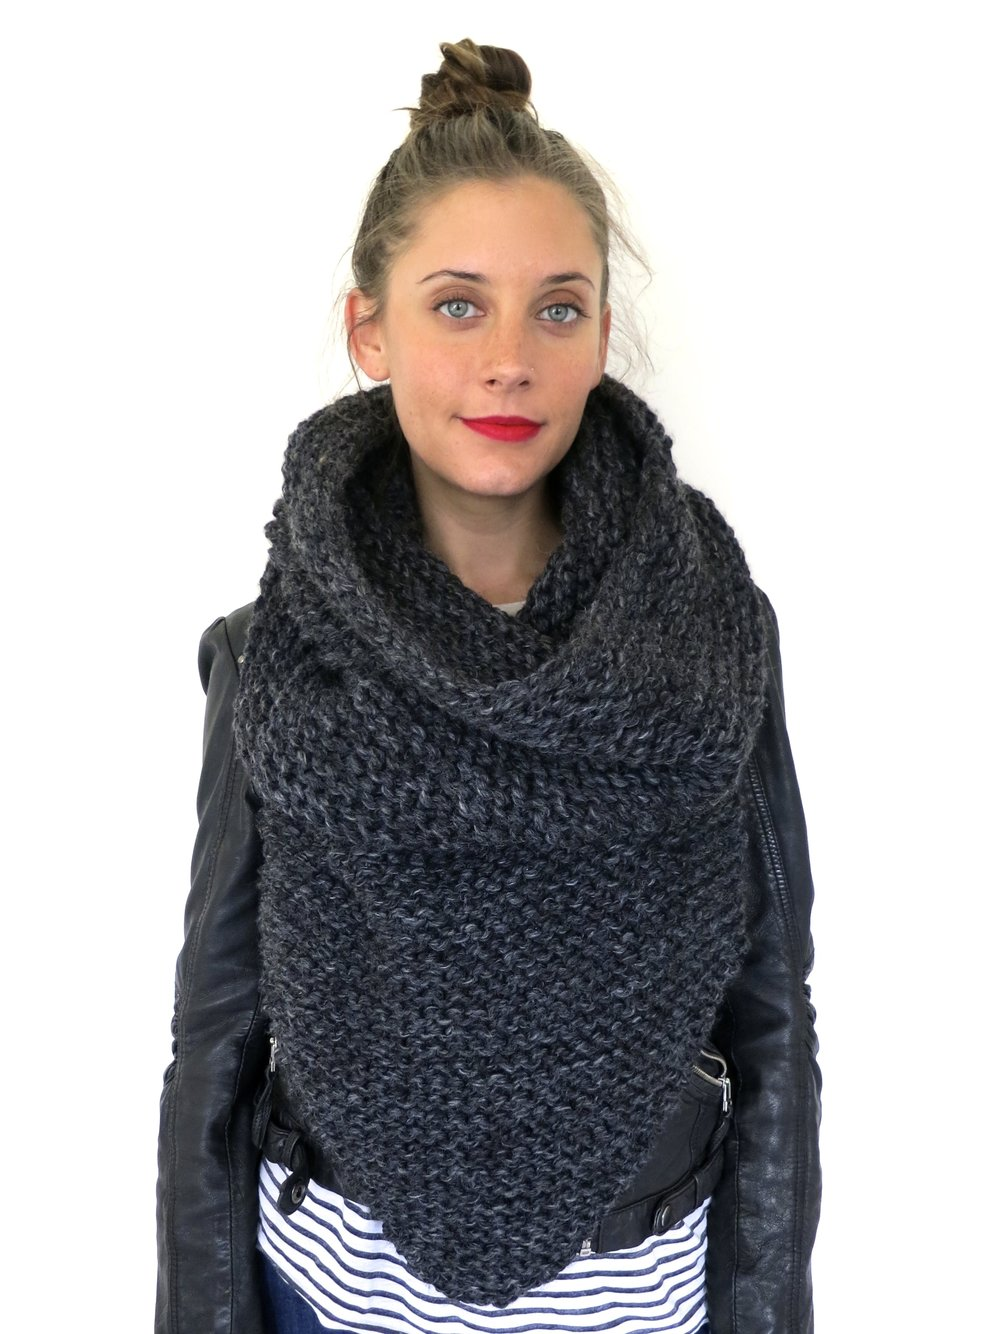 Armor Scarf pattern by Two of Wands